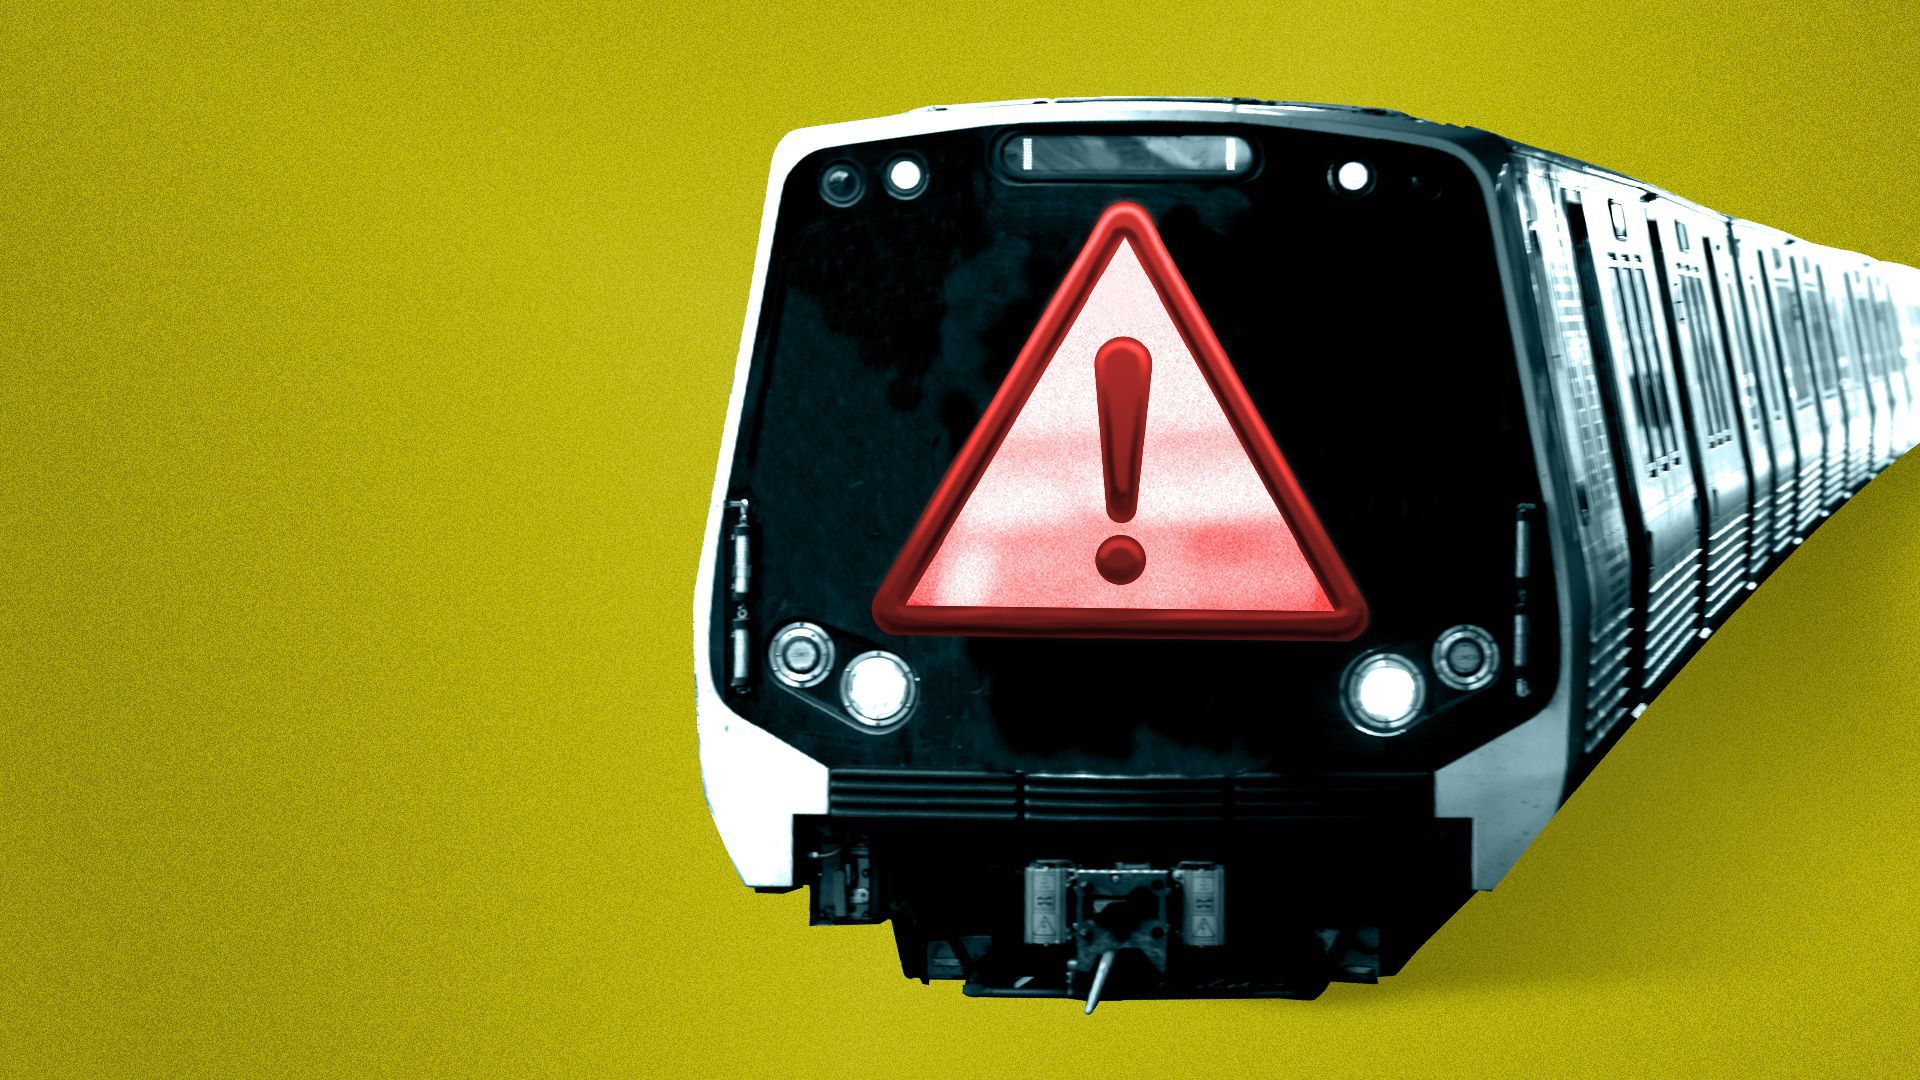 Illustration of a Metro train with a front window shaped like a danger sign.